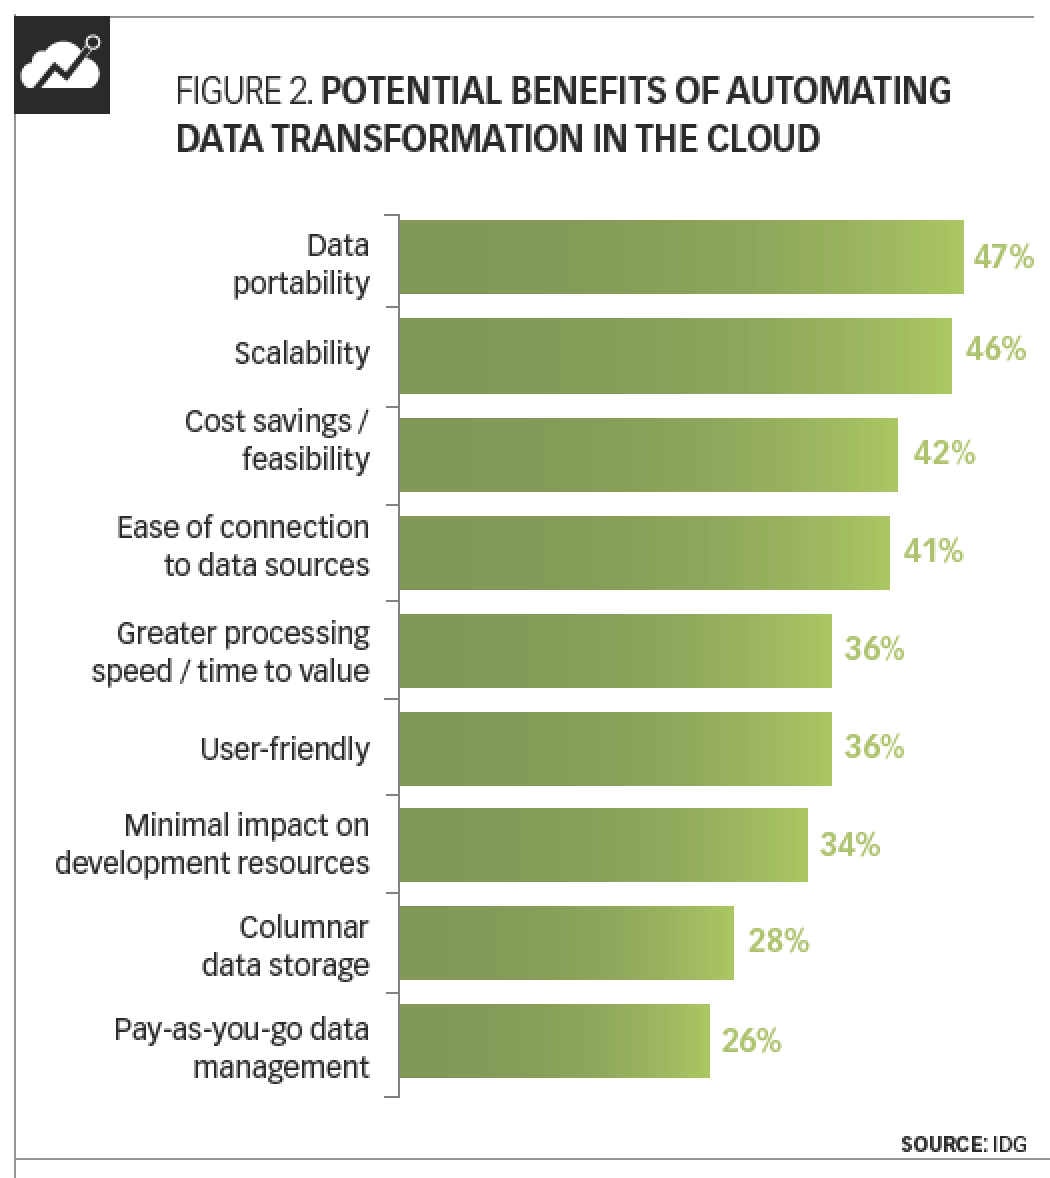 Figure 2: Potential benefits of automating data transformation in the cloud.